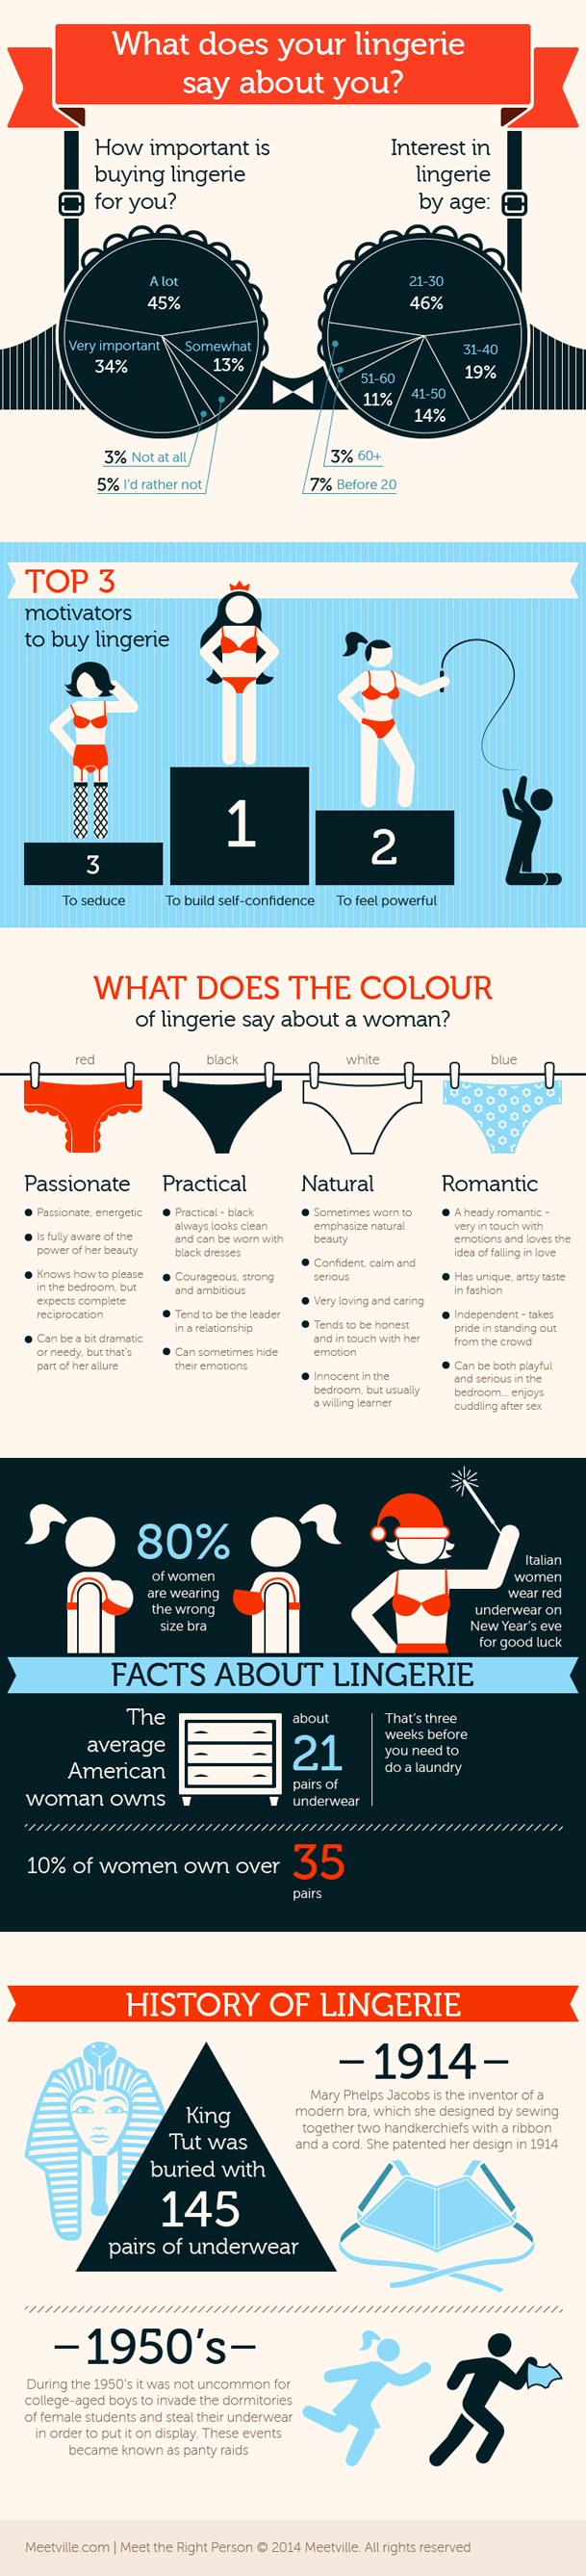 What does her Lingerie Say Infographic dating-singles-meetville-matchmaking